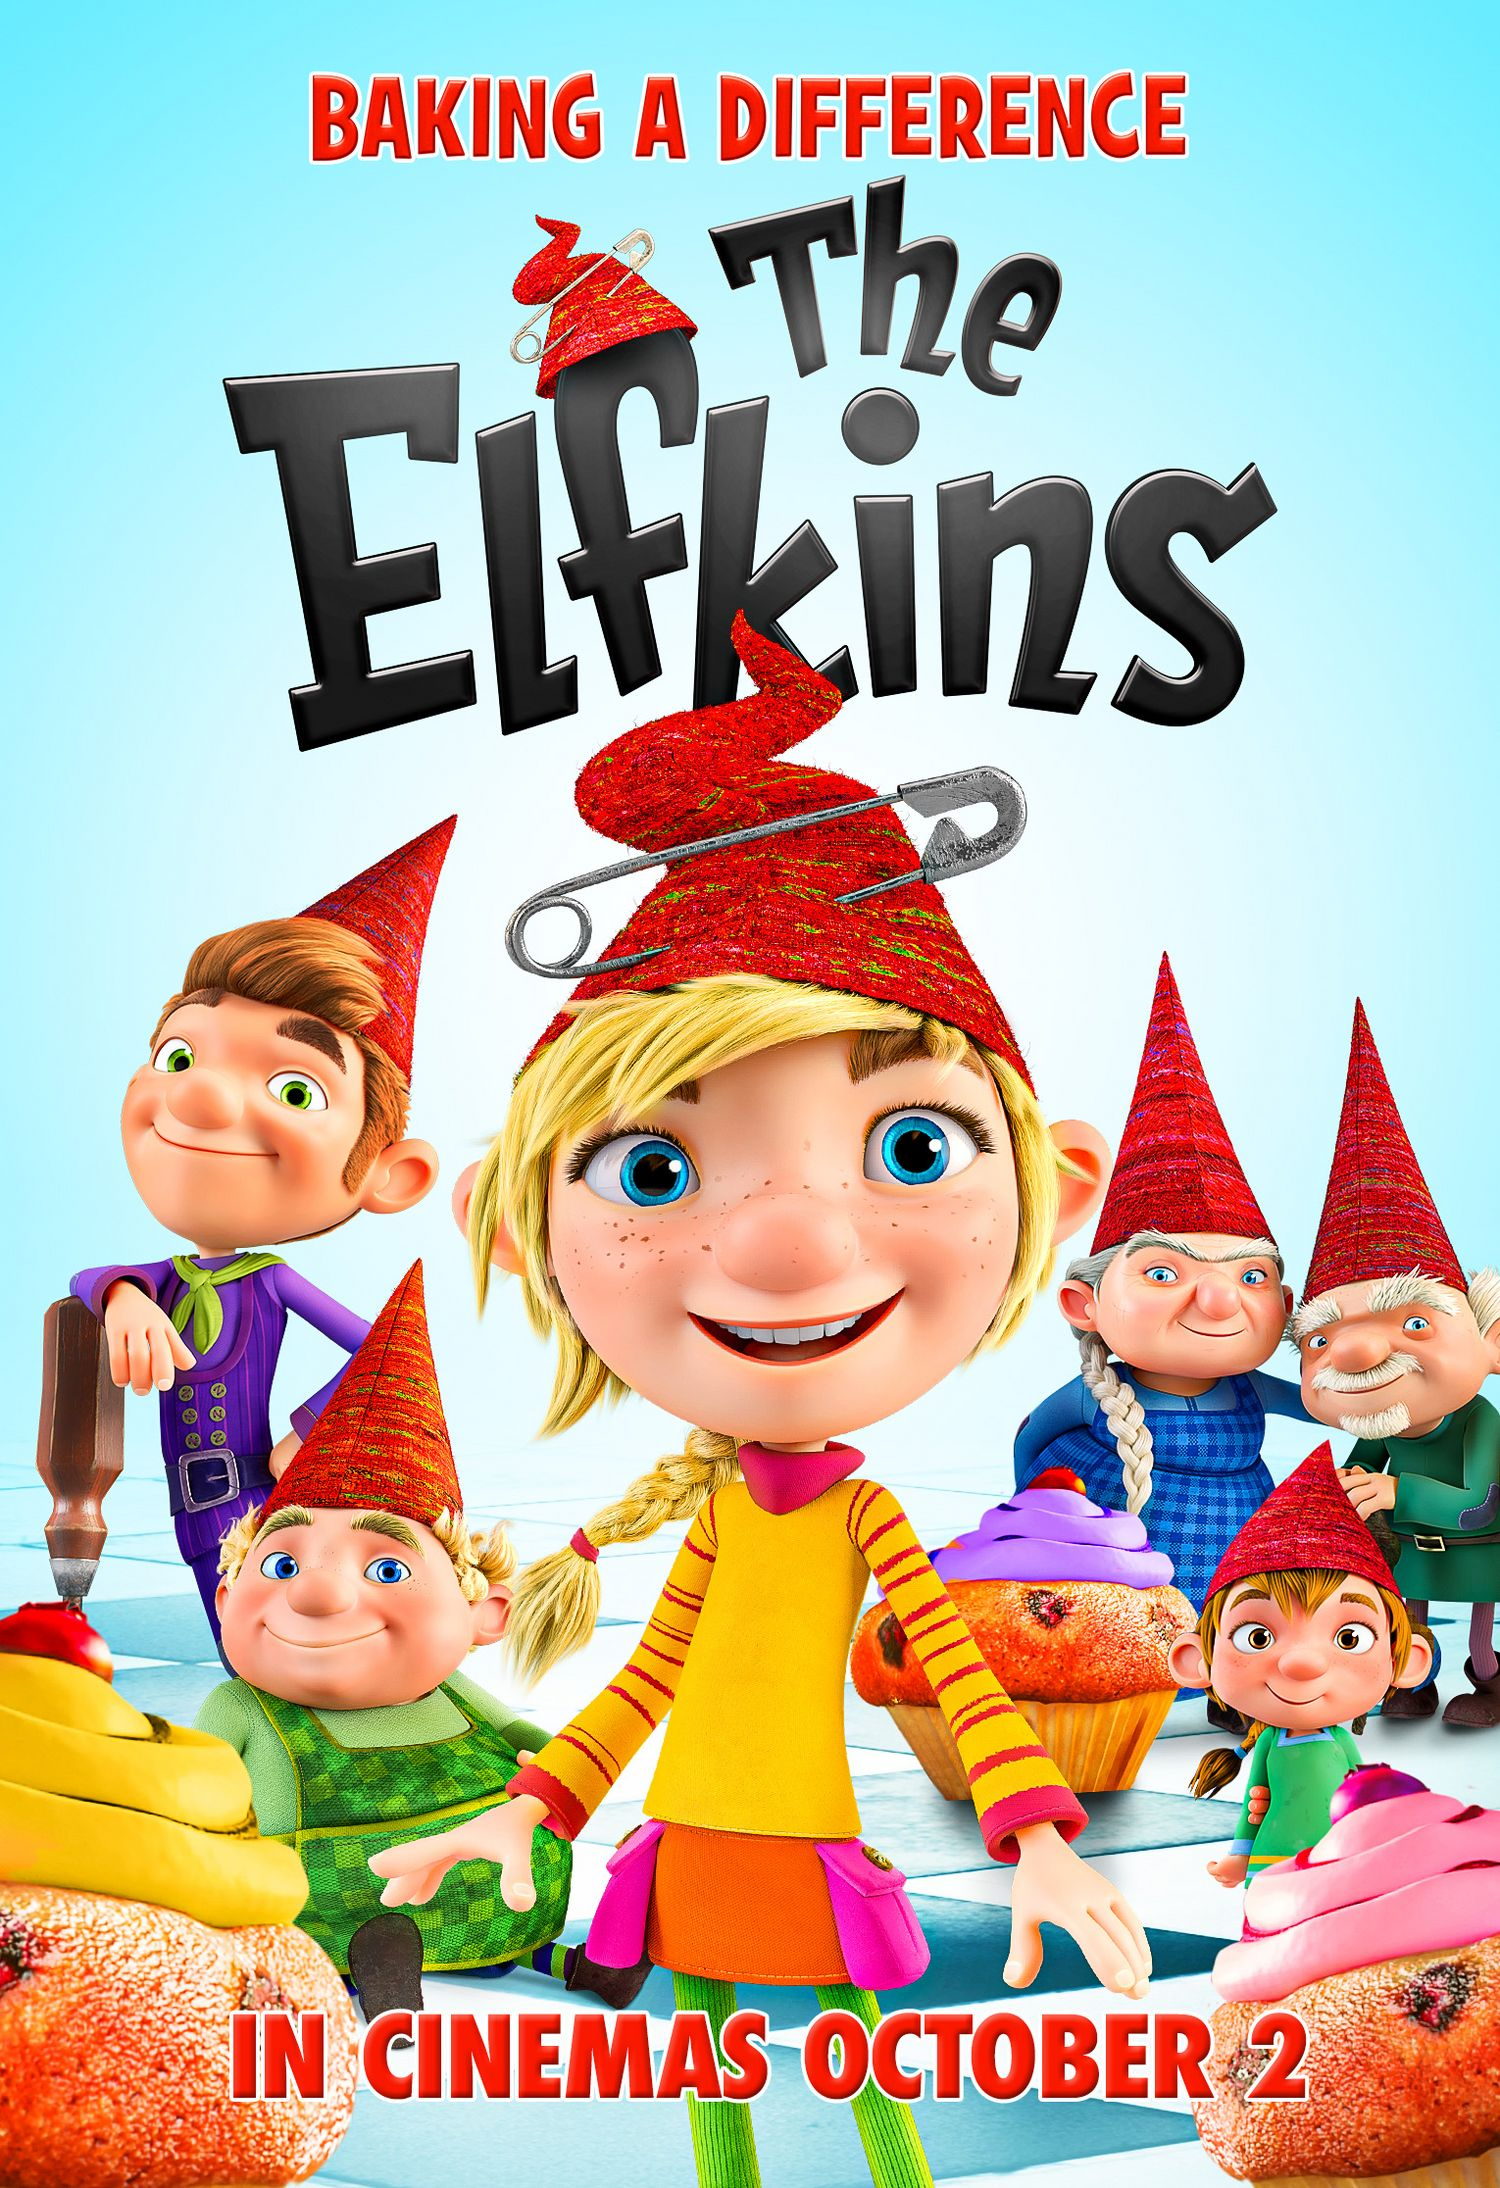 The Elfkins (Signature Entertainment, 2nd October) Theatrical Poster